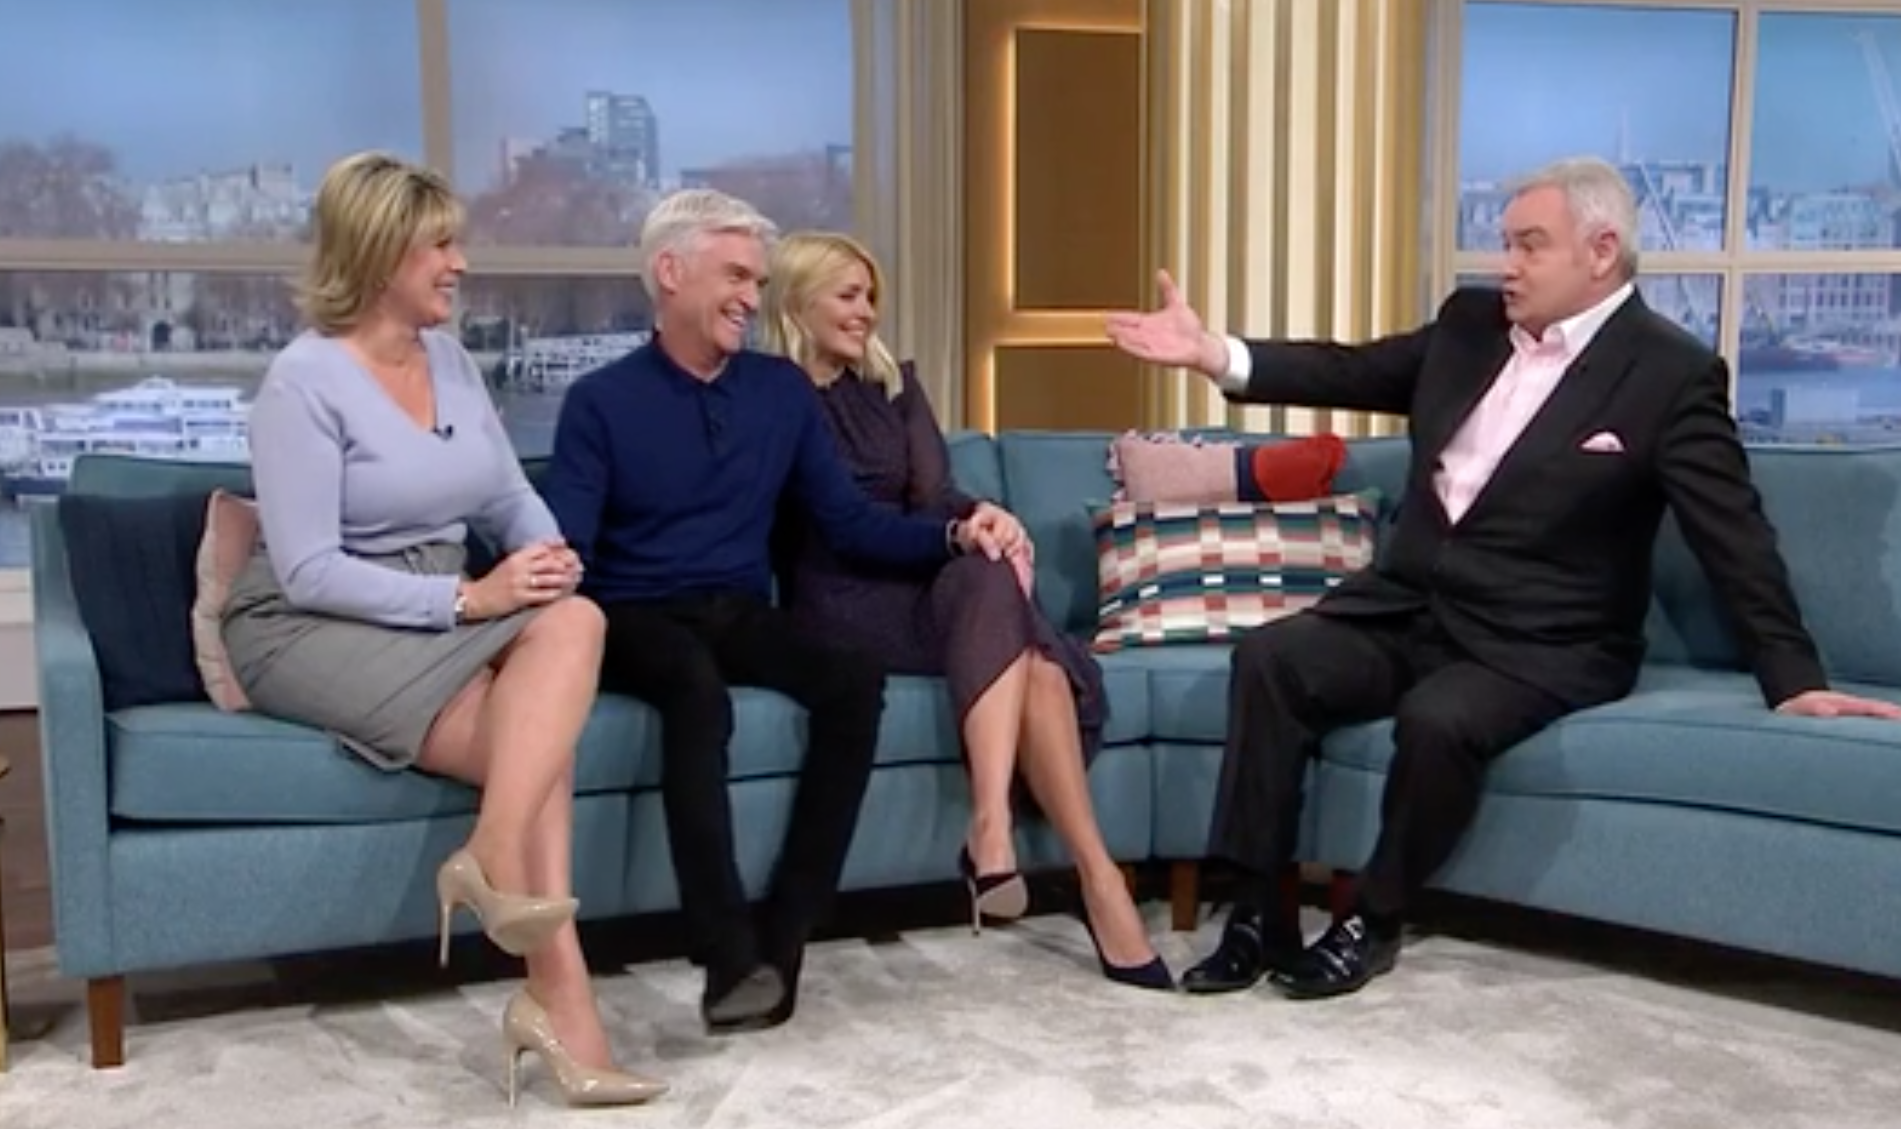 This Morning viewers accuse Eamonn Holmes of ruining Phillip Schofield's coming out announcement